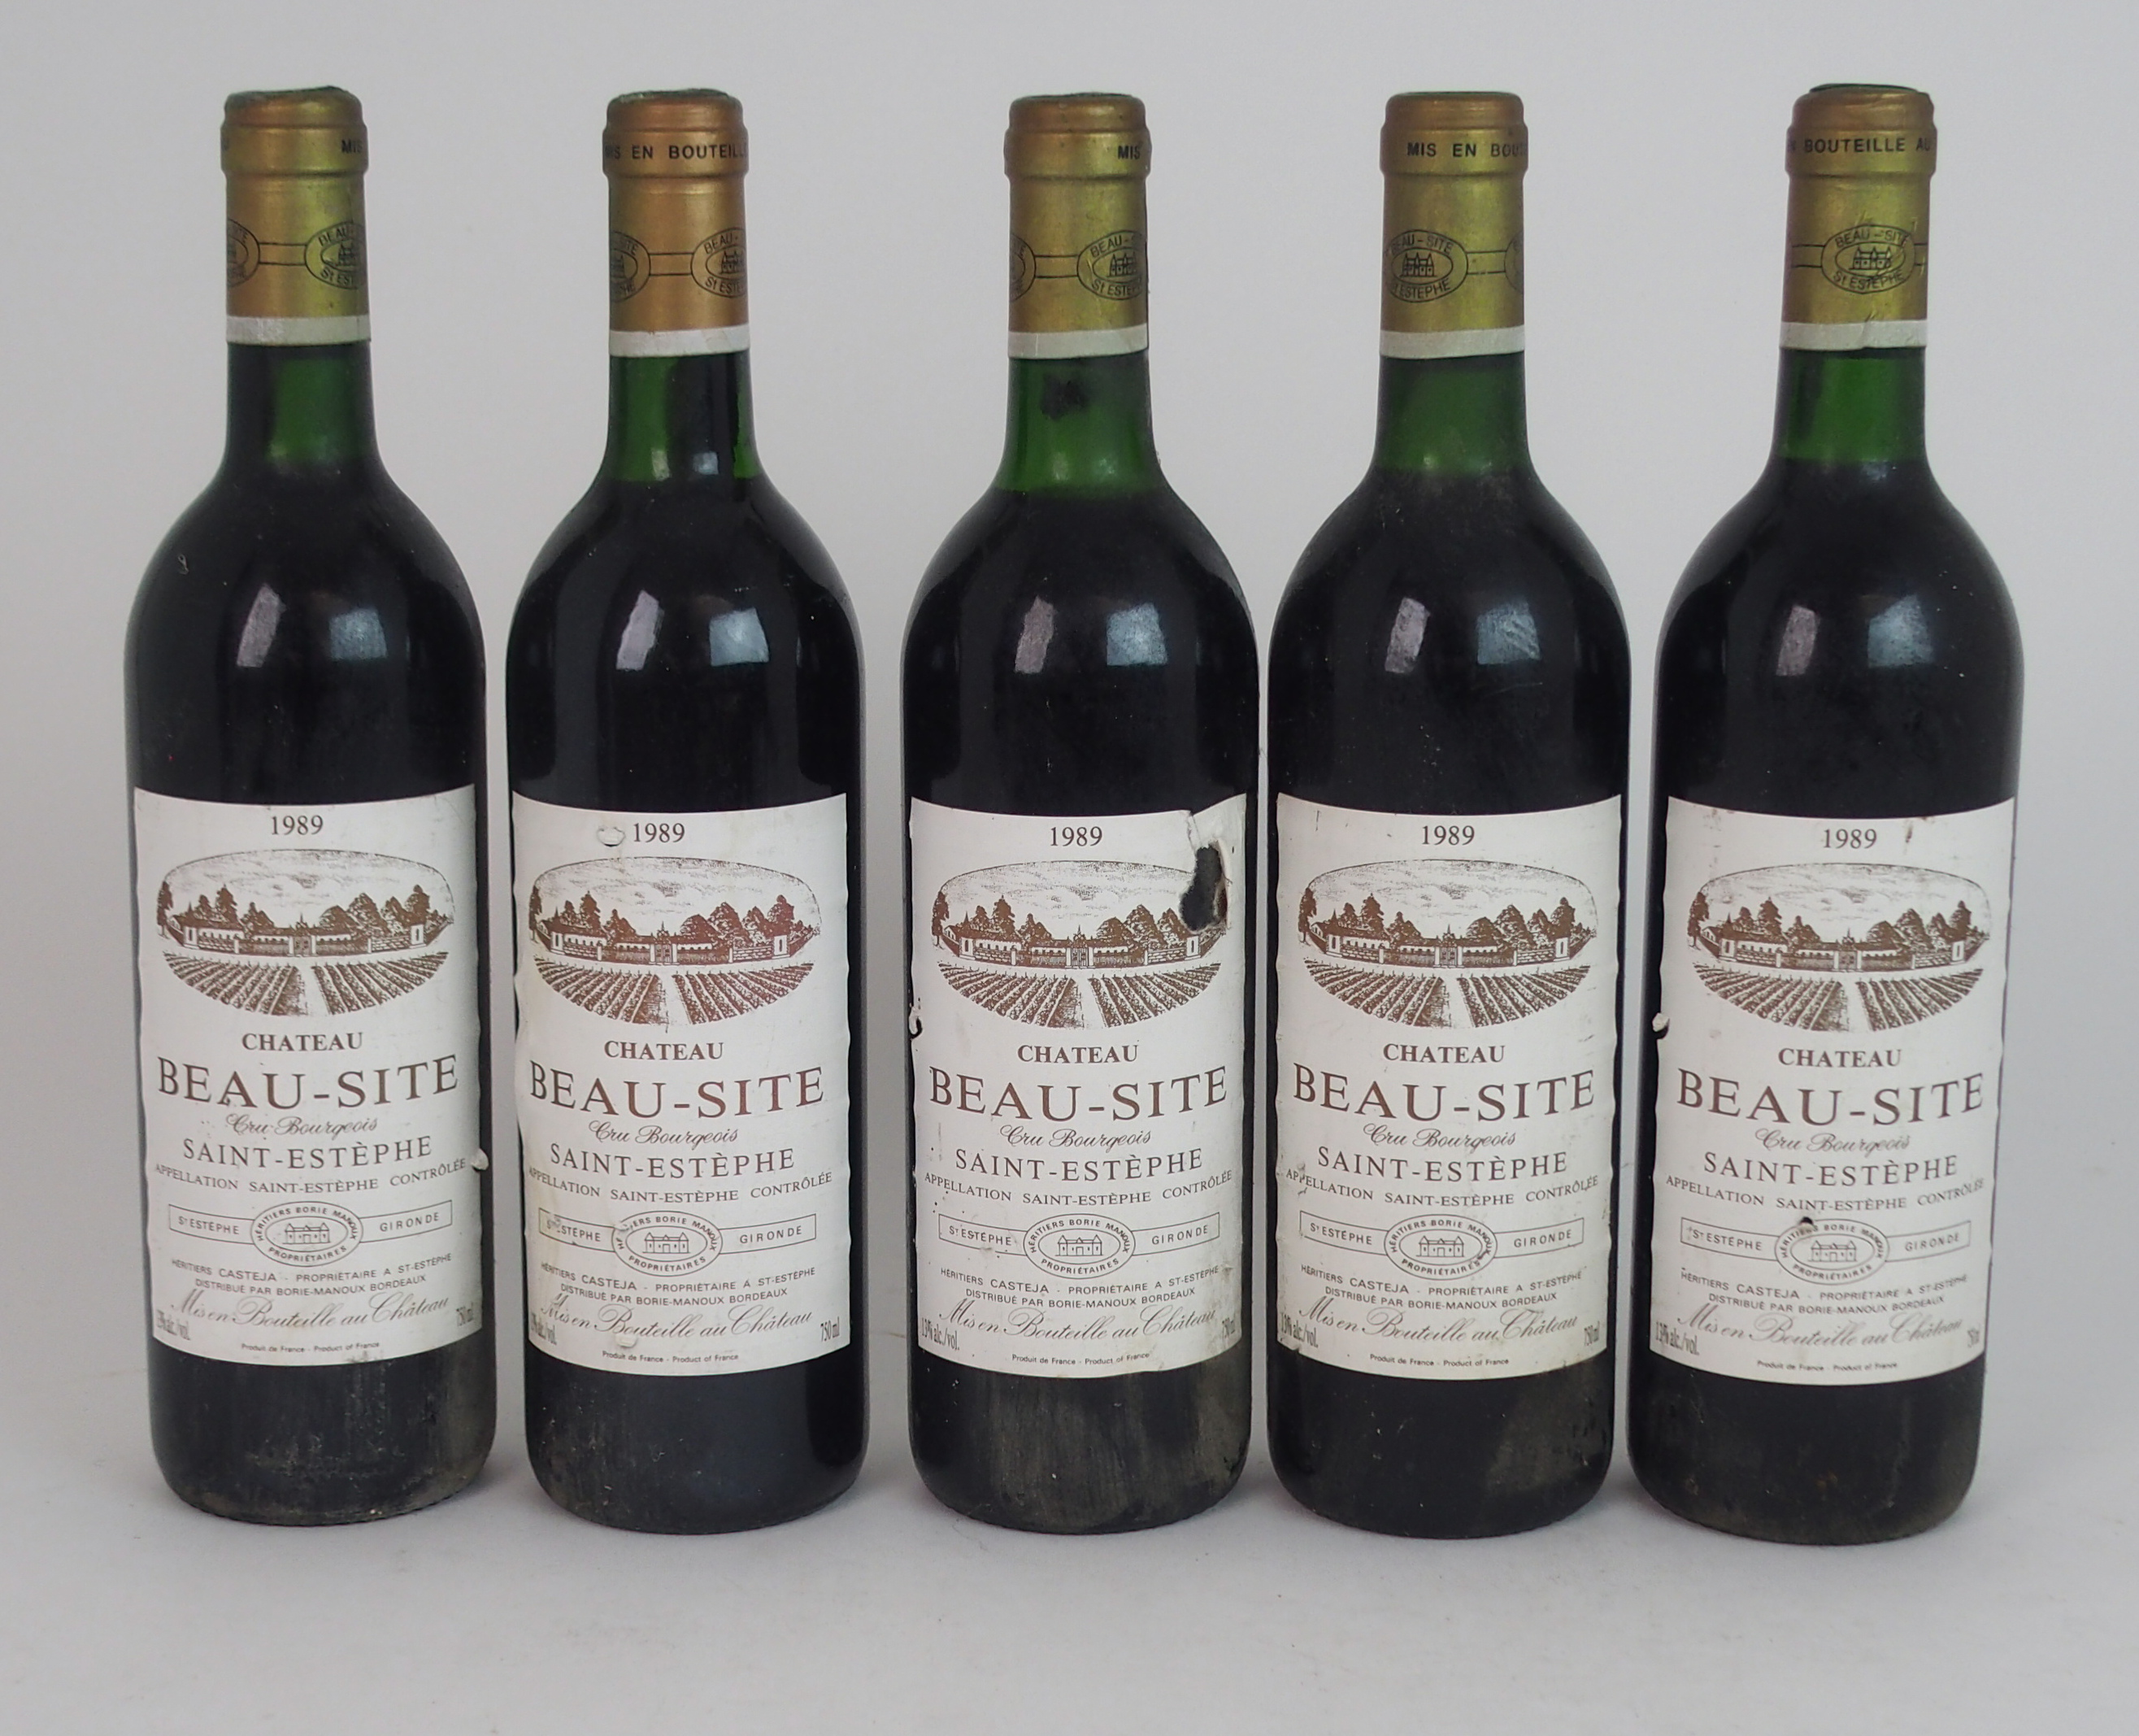 ELEVEN BOTTLES OF CHATEAU BEAU-SITE, SAINT ESTEPHE, 1989 13%vol, 750ml, labels stained and some torn - Image 2 of 8